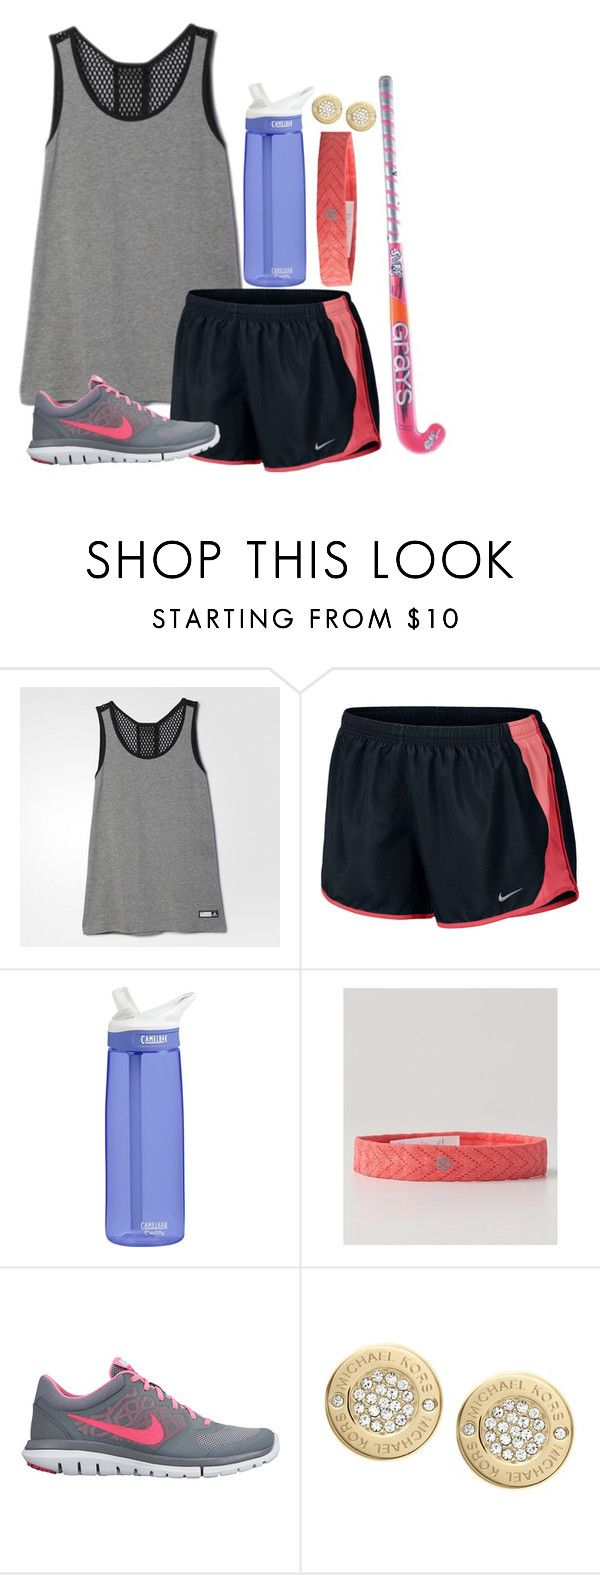 """Had my first field hockey practice today!"" by prep-life-is-good-life ❤ liked on Polyvore featuring adidas, NIKE, CamelBak, lululemon, Michael Kors, women's clothing, women's fashion, women, female and woman"